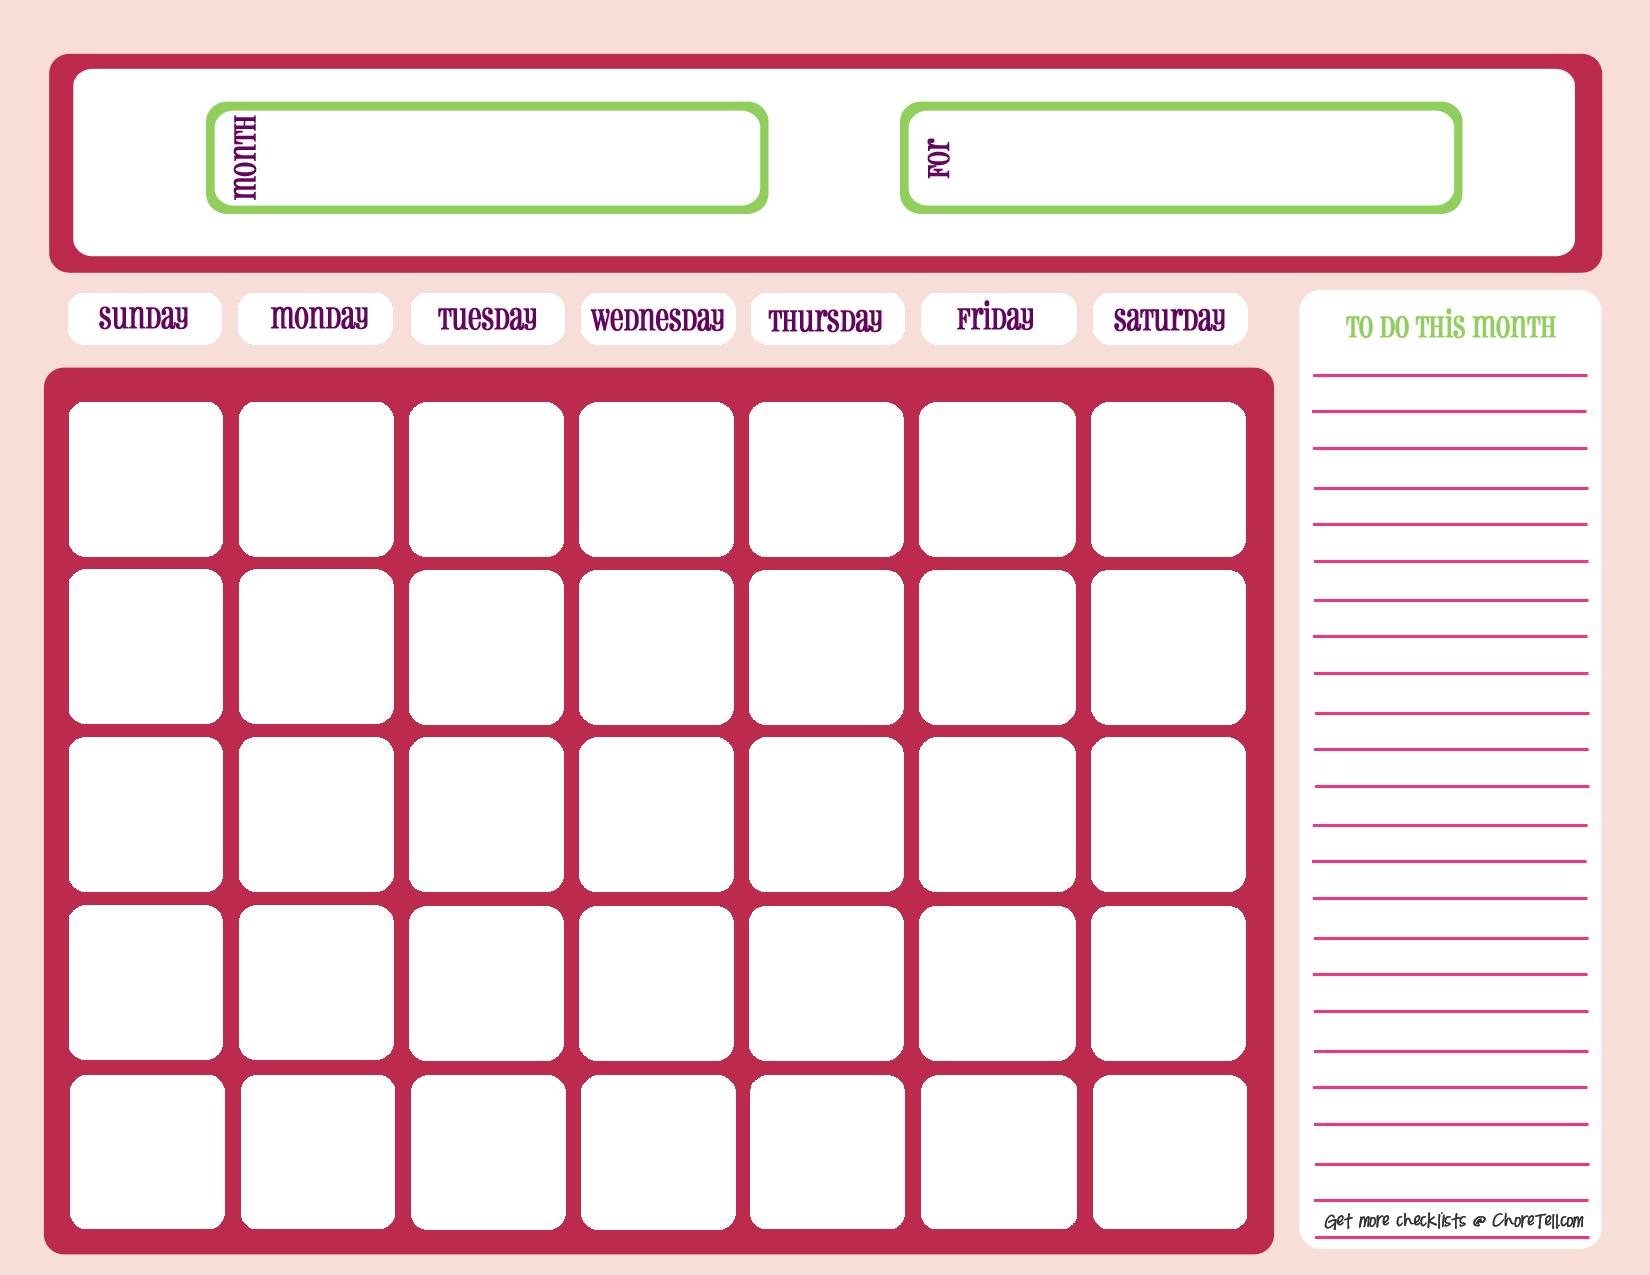 Blank Month Calendar - Pinks - Free Printable Downloads From Choretell with Blank Monthly Planner Free Printable